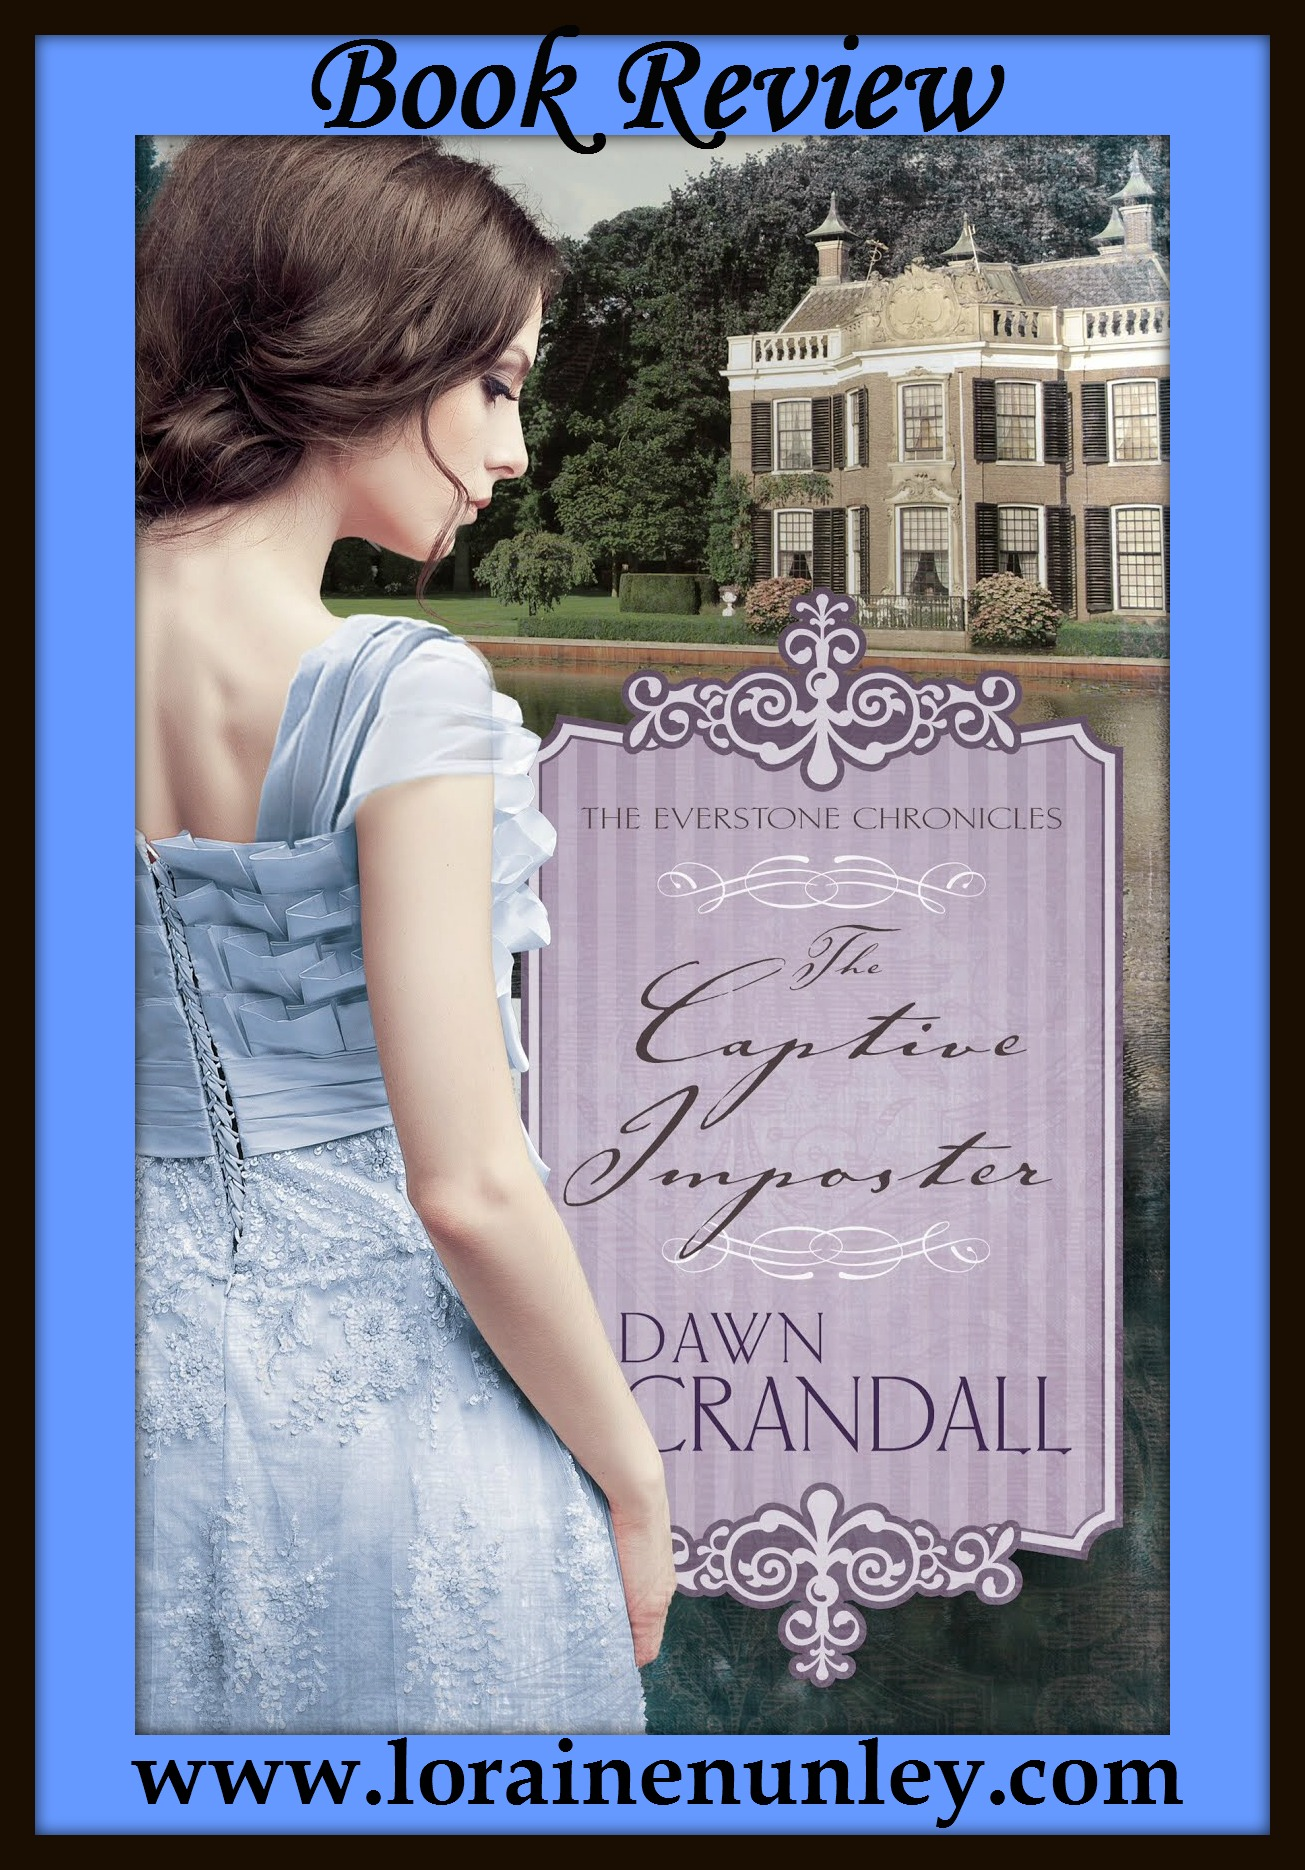 Book Review: The Captive Imposter by Dawn Crandall